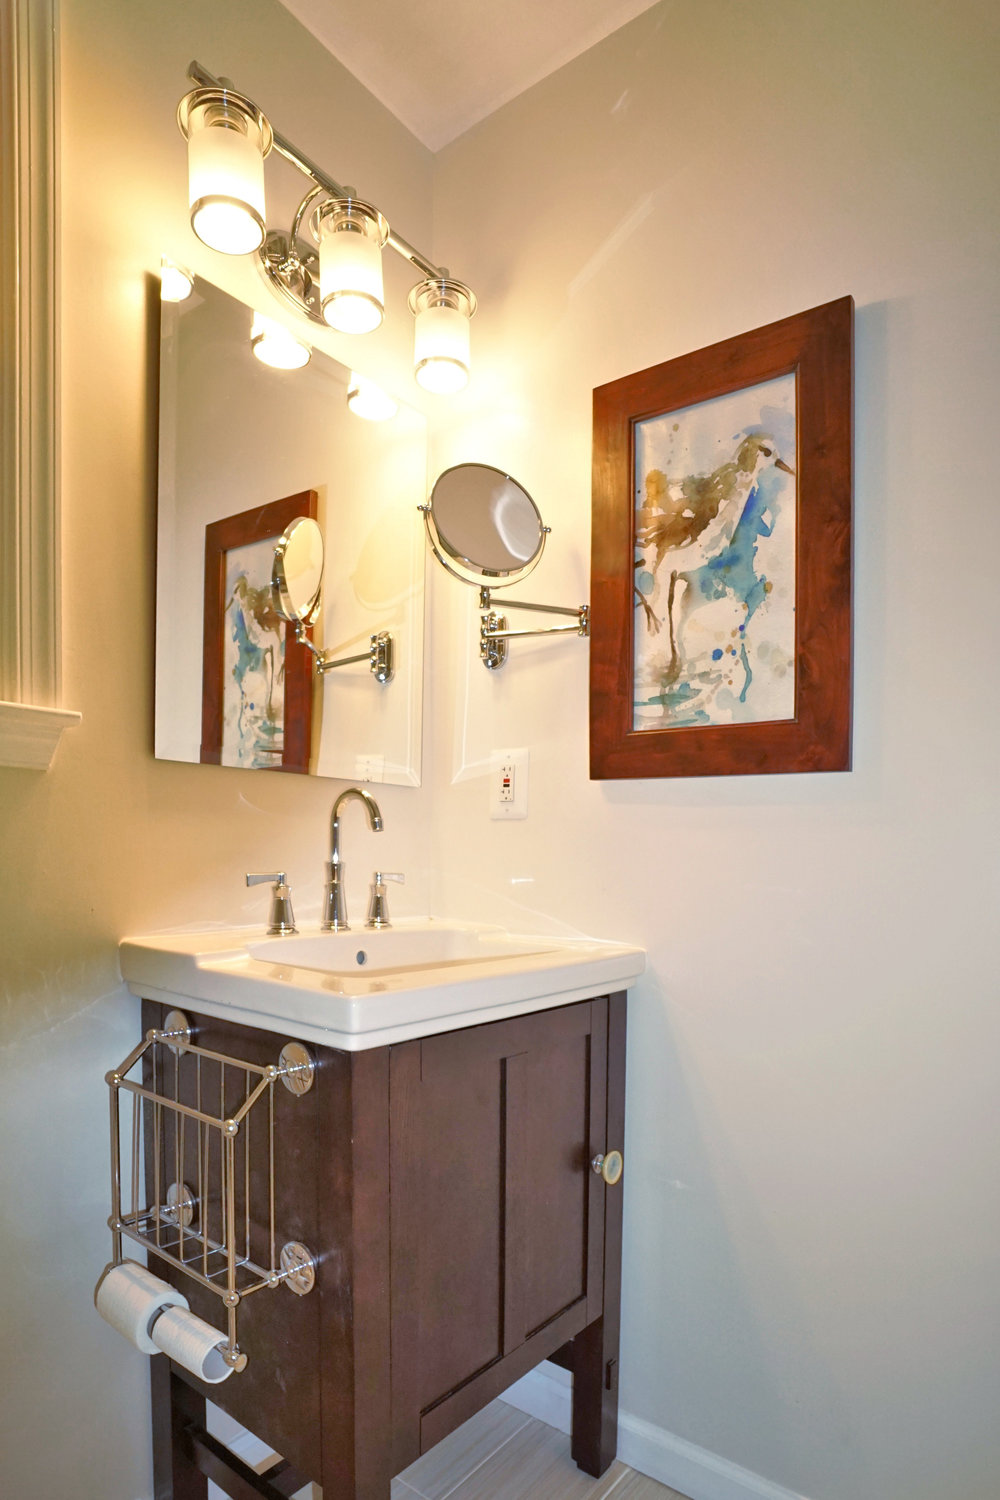 Small bathroom Remodel Elicott City MD0.JPG